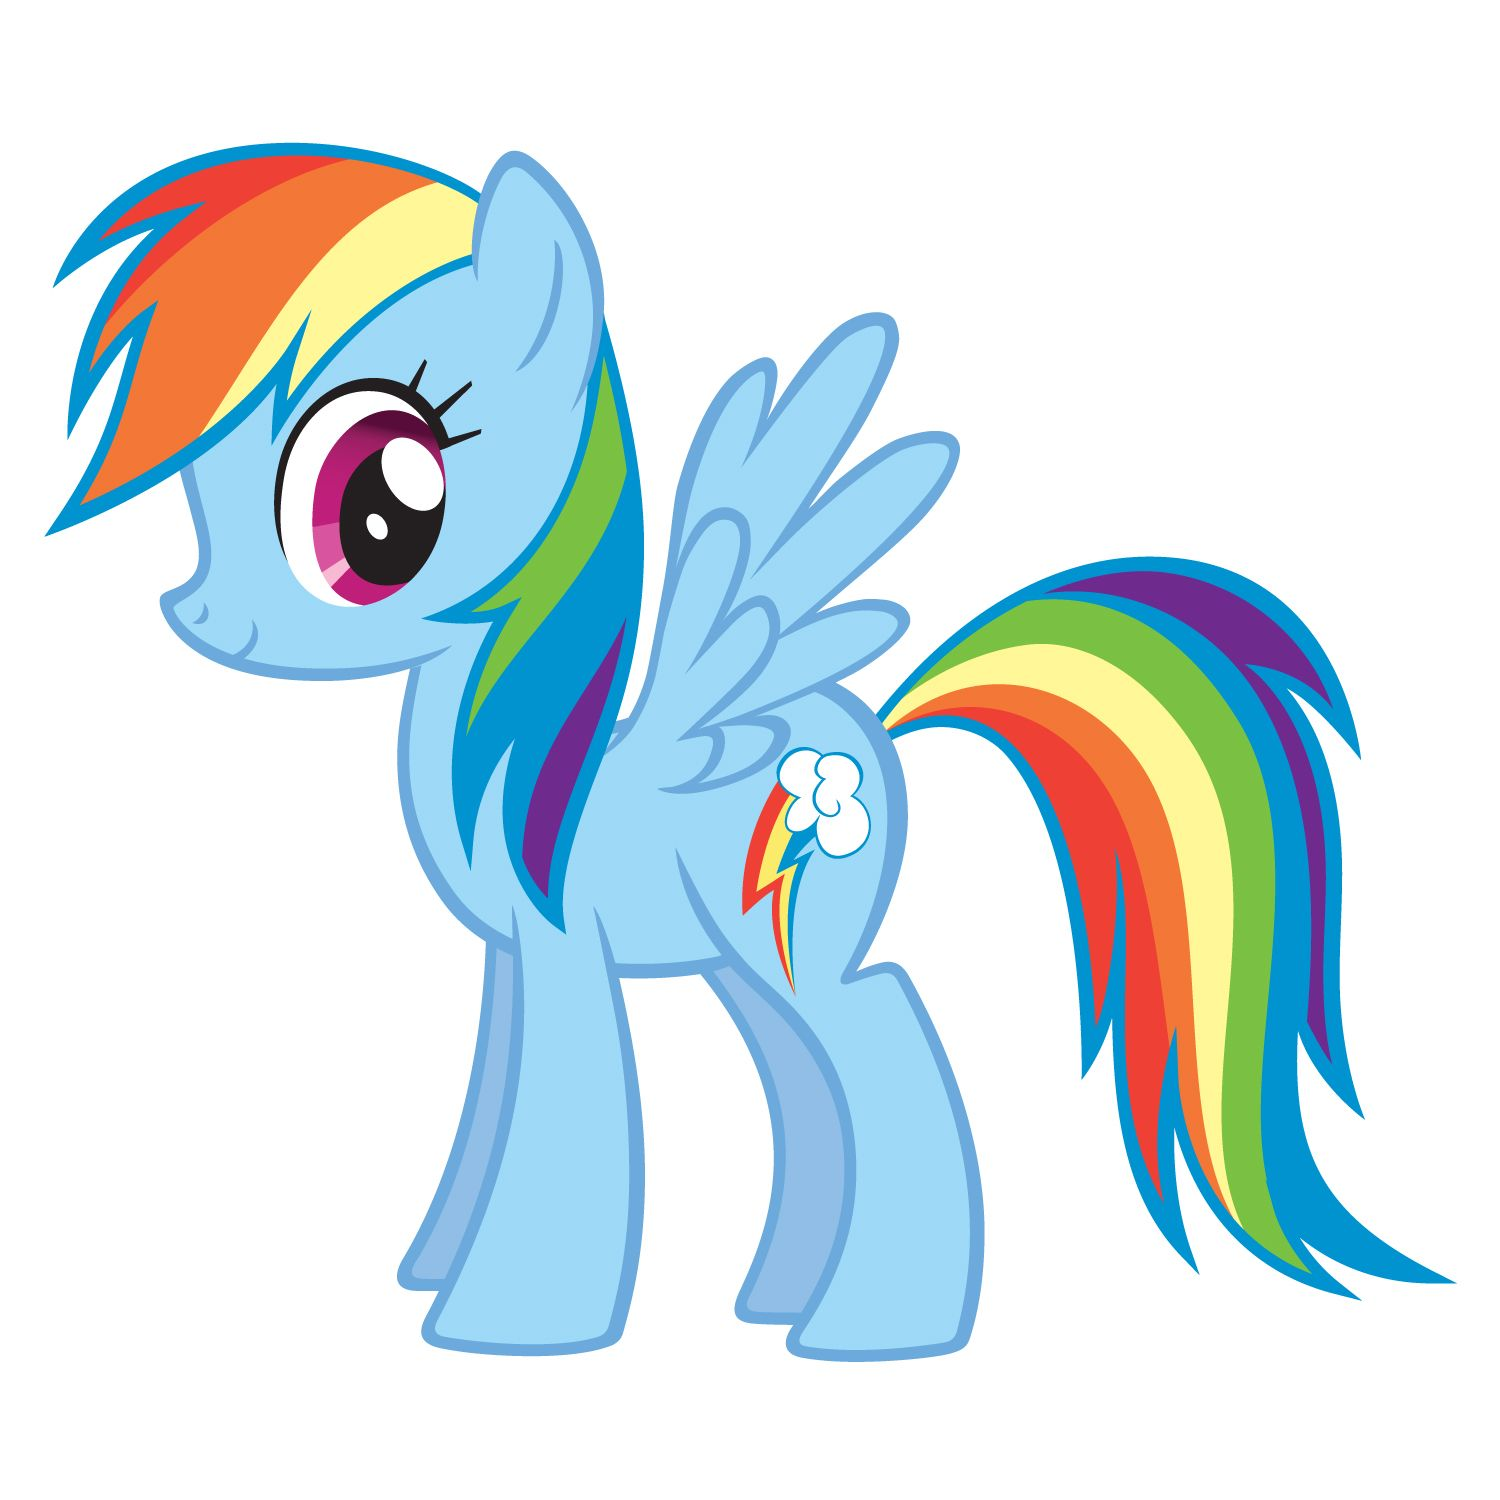 My little pony printable coloring pages rainbow dash - Shoutout My Little Pony Friendship Is Magic Television In One Episode Of Rainbow Dash